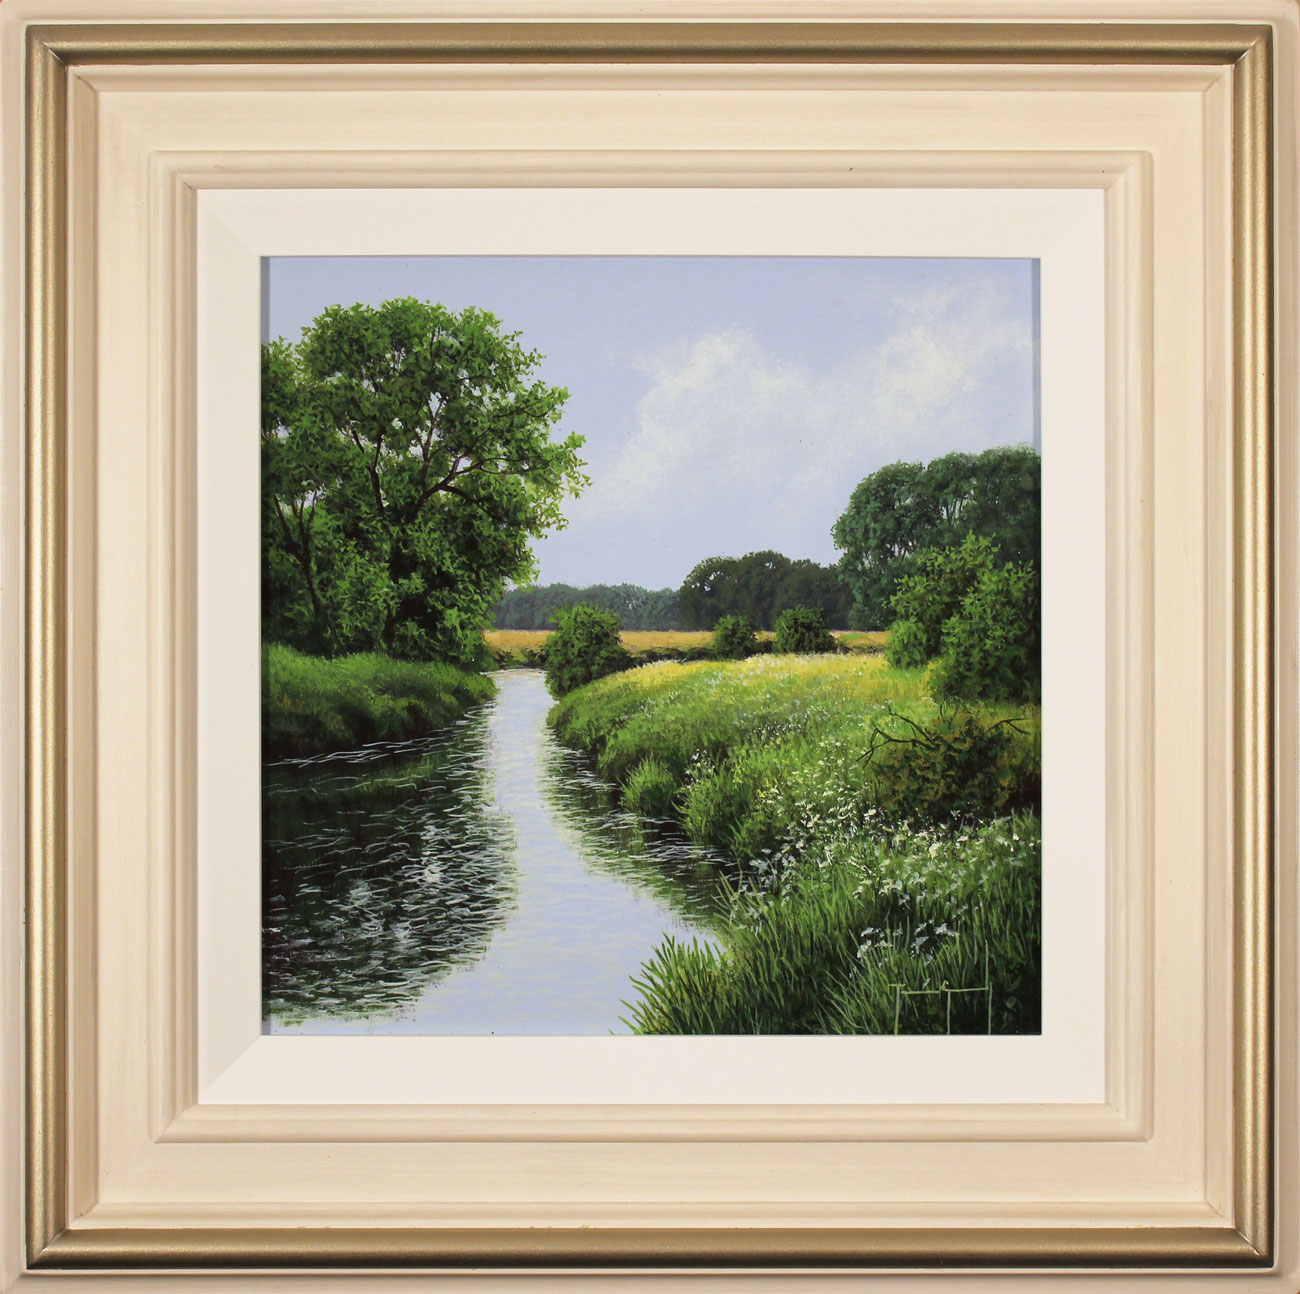 Terry Grundy, Original oil painting on panel, The River Wharfe. Click to enlarge